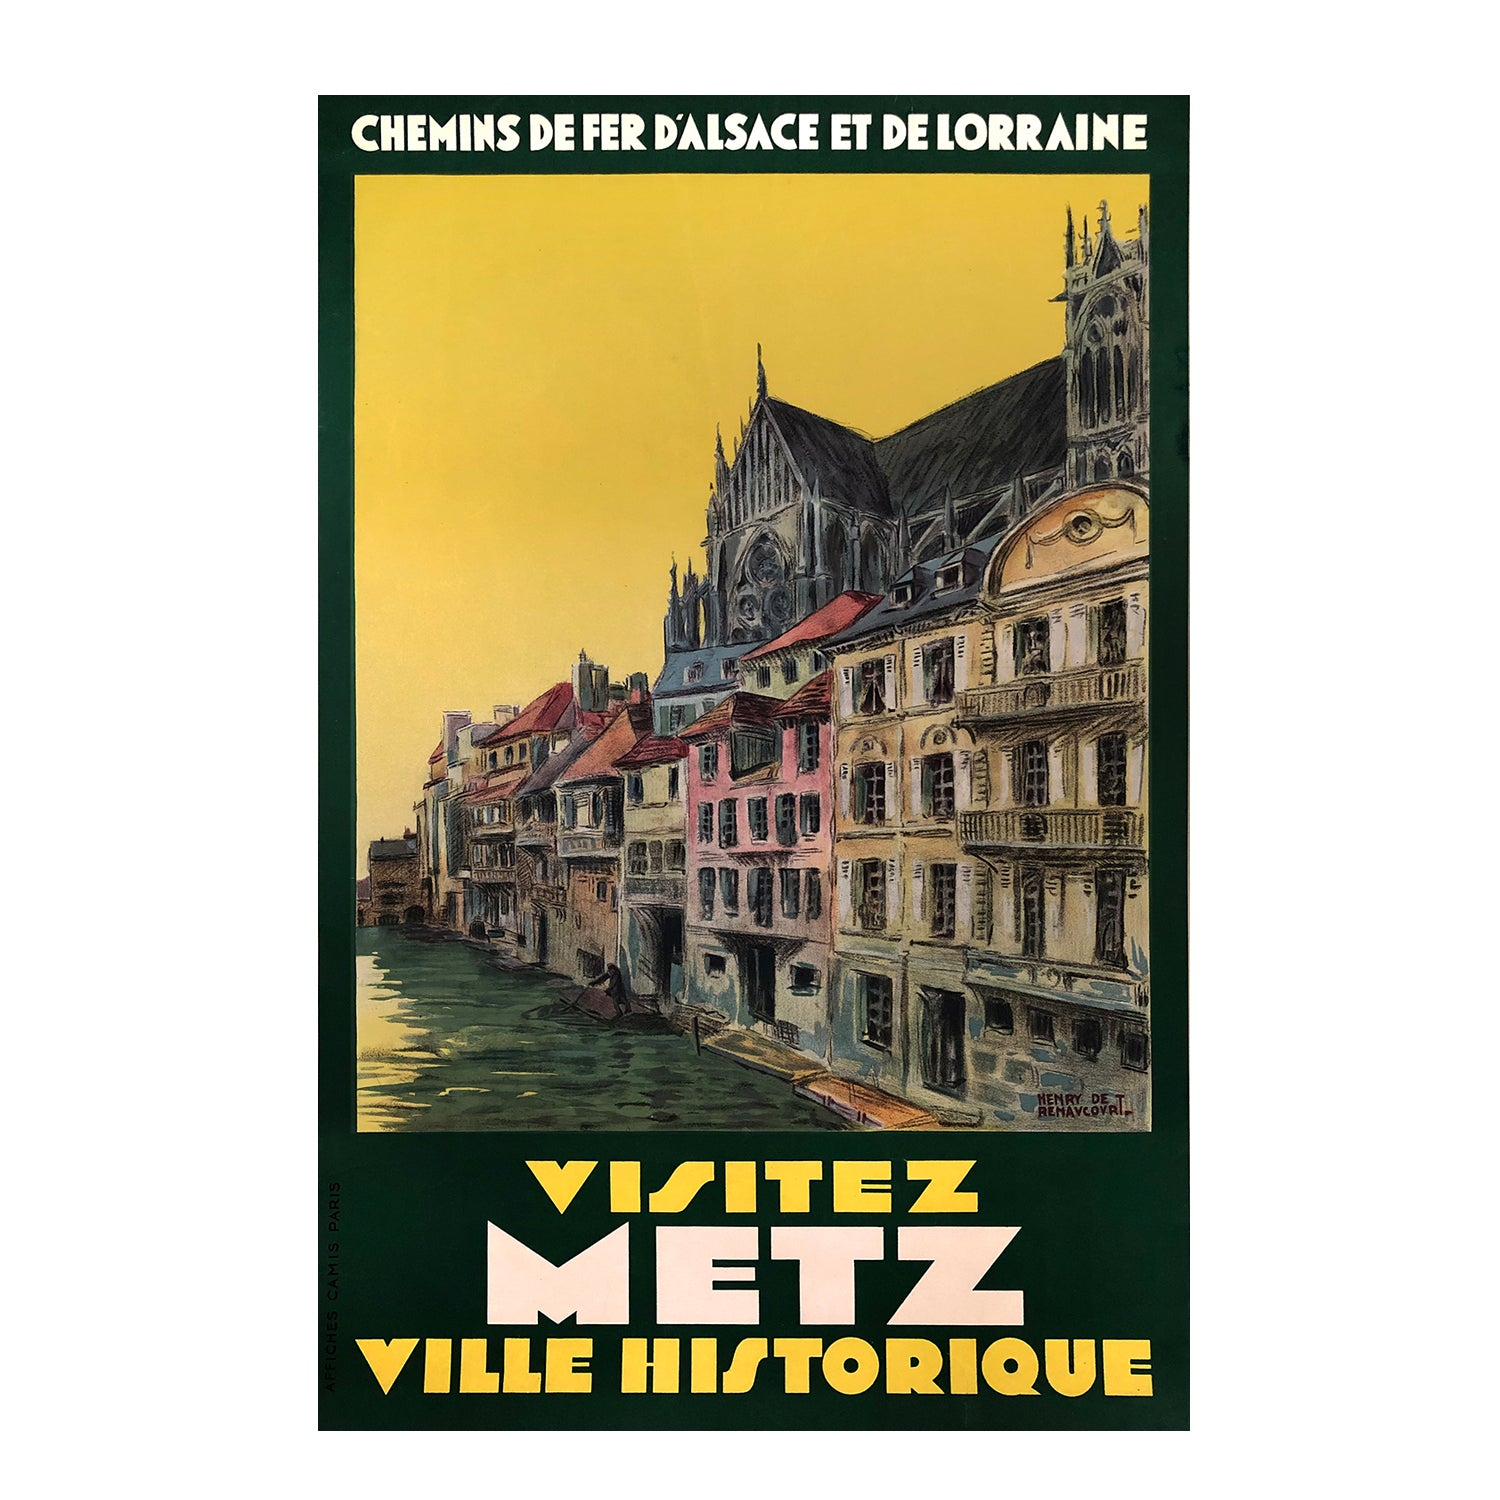 An original French 1920s poster by Henri de Renaucourt promoting travel to Metz in the Lorraine region